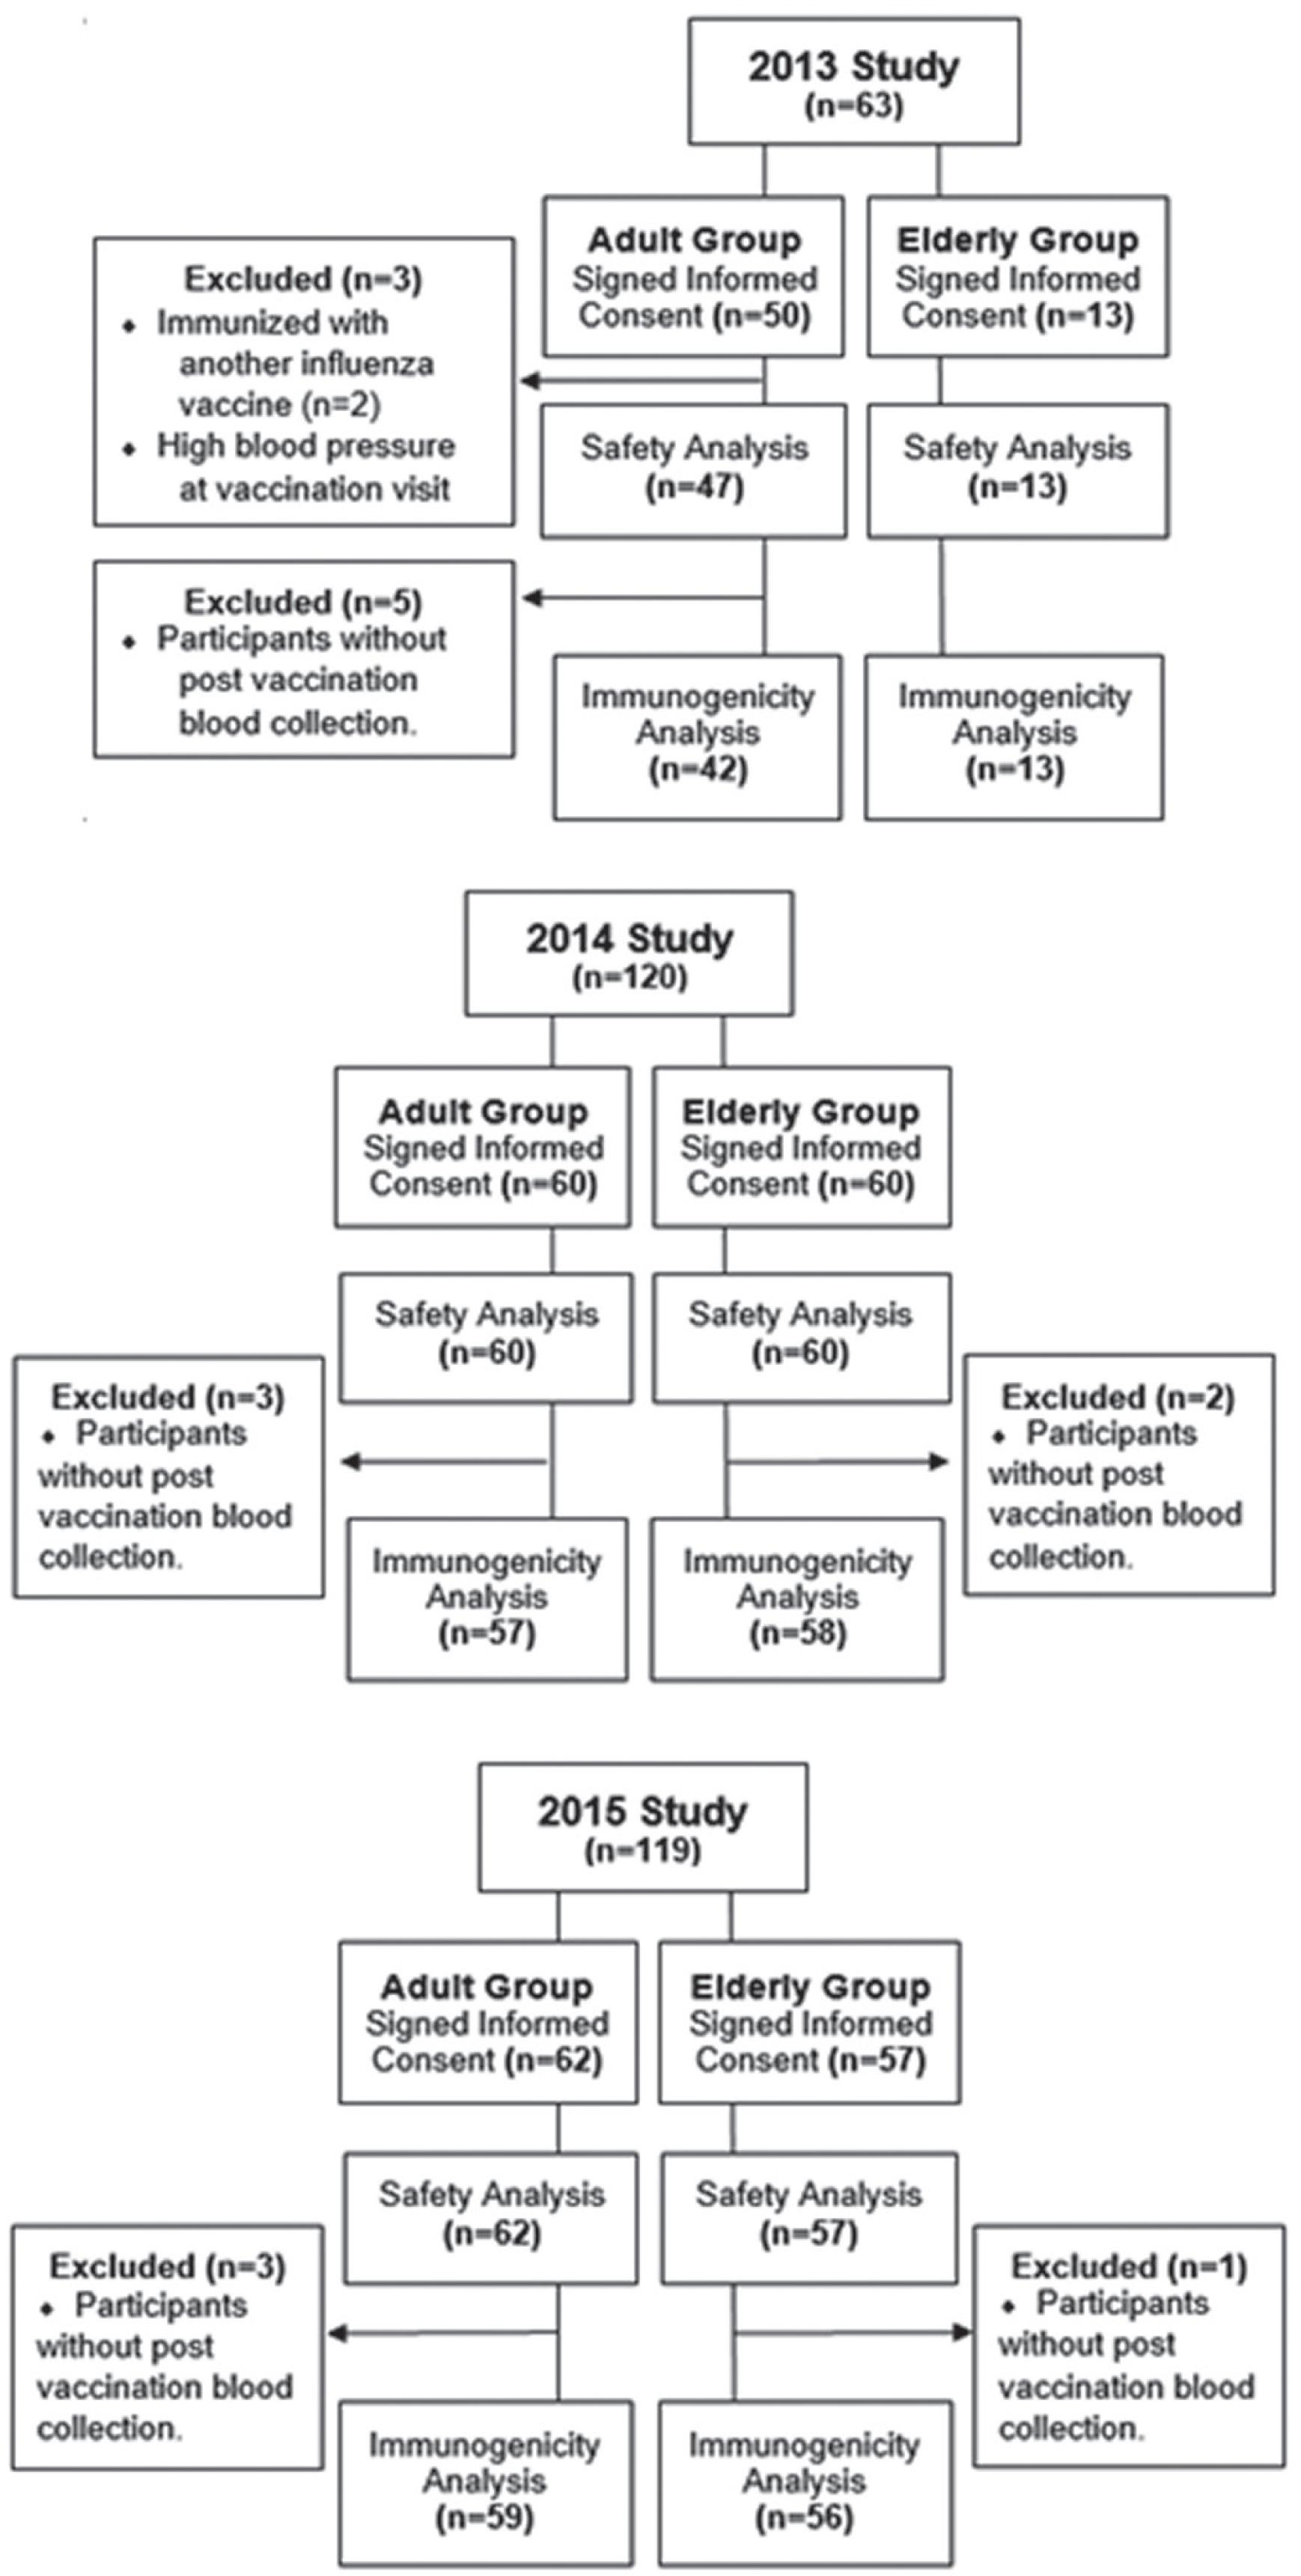 Flowchart with the number of participants included and analyzed by the study endpoints, year and age group